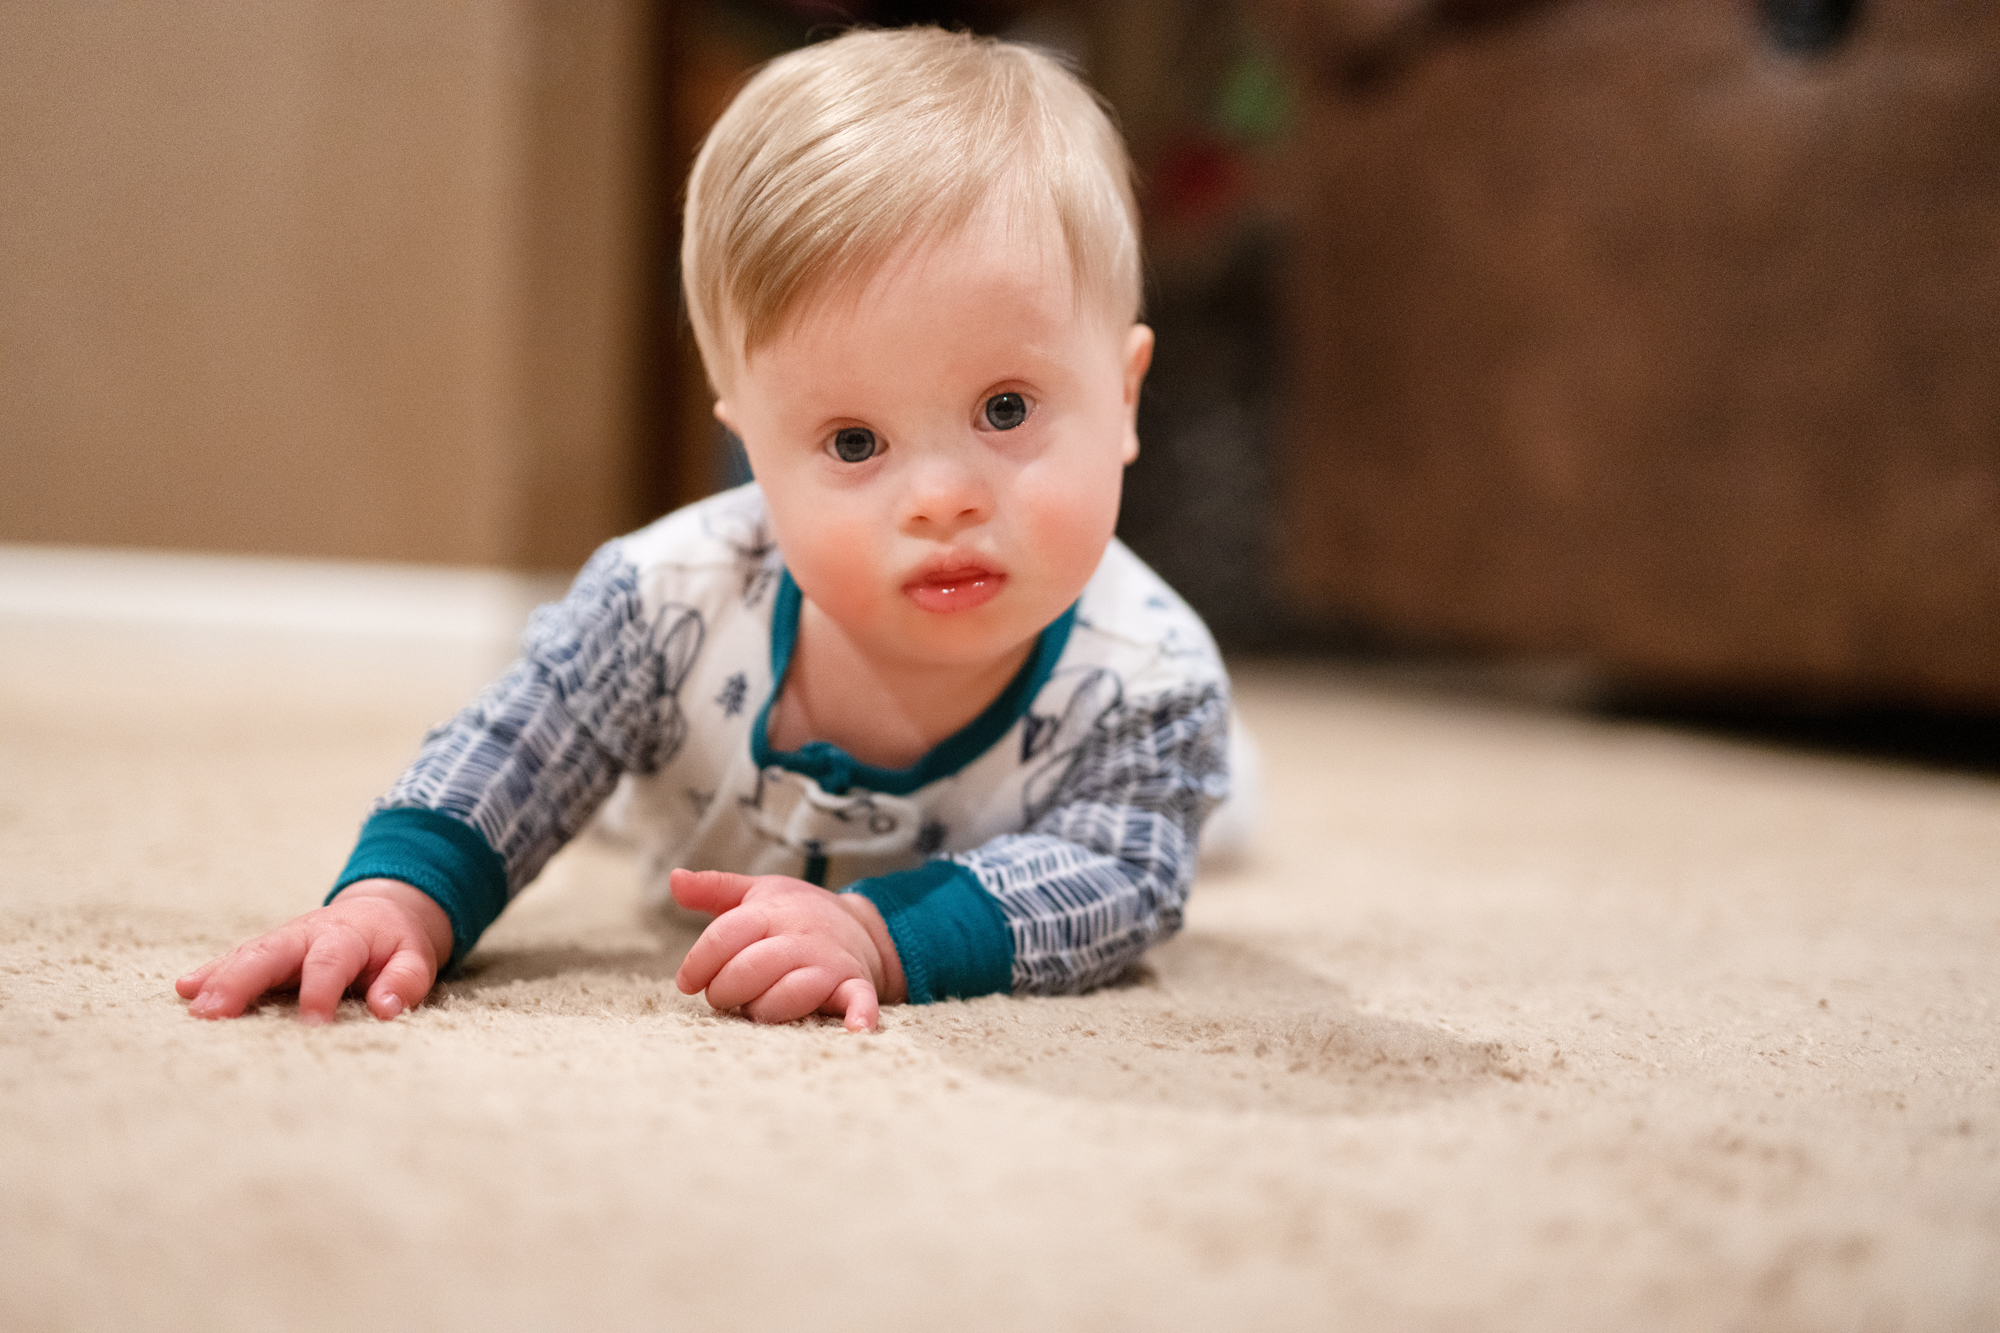 Rohen Carberry laying on carpet floor